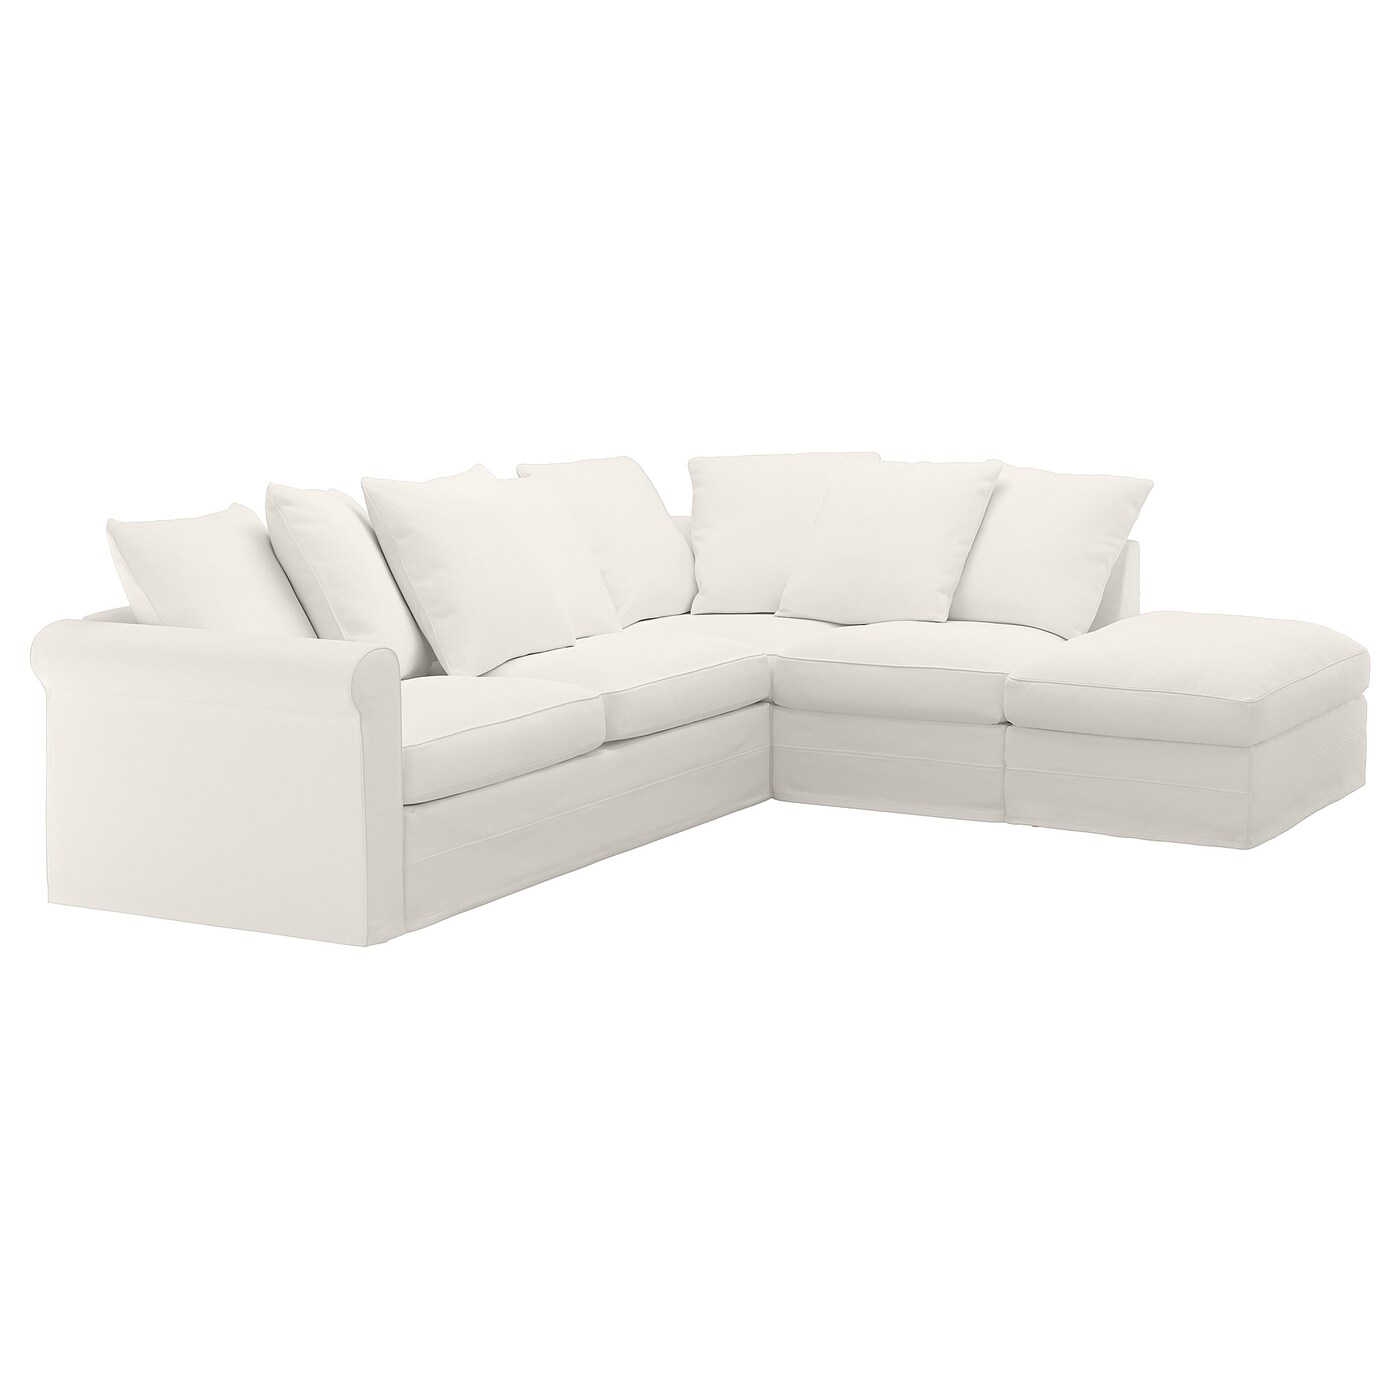 Corner Sofa Bed Sale Edinburgh Sofa Beds Corner Sofa Beds Futons Ikea